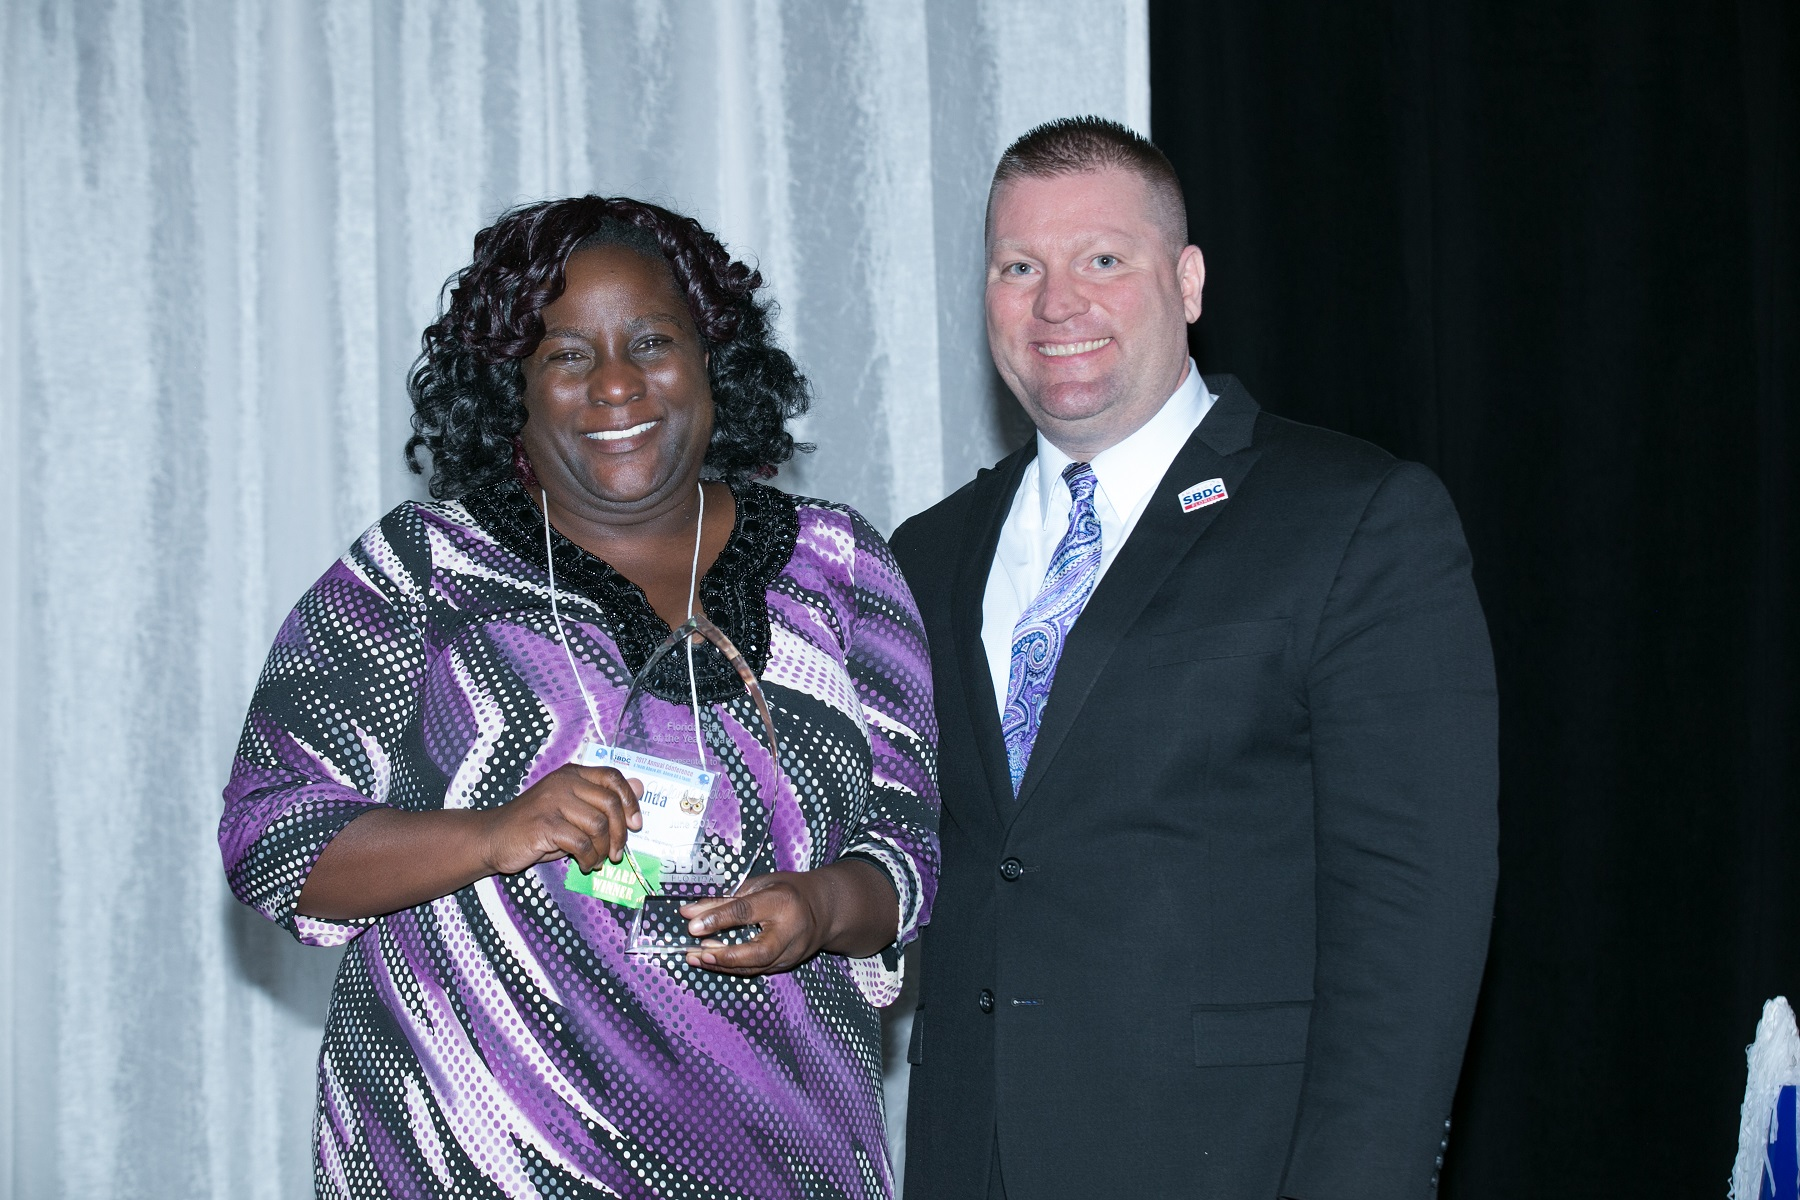 L-R: Yolanda Cowart, a business consultant for the Florida SBDC at Pinellas County Economic Development, receives the Florida SBDC's 2017 State Star Award from Michael Myhre, CEO and Network State Director